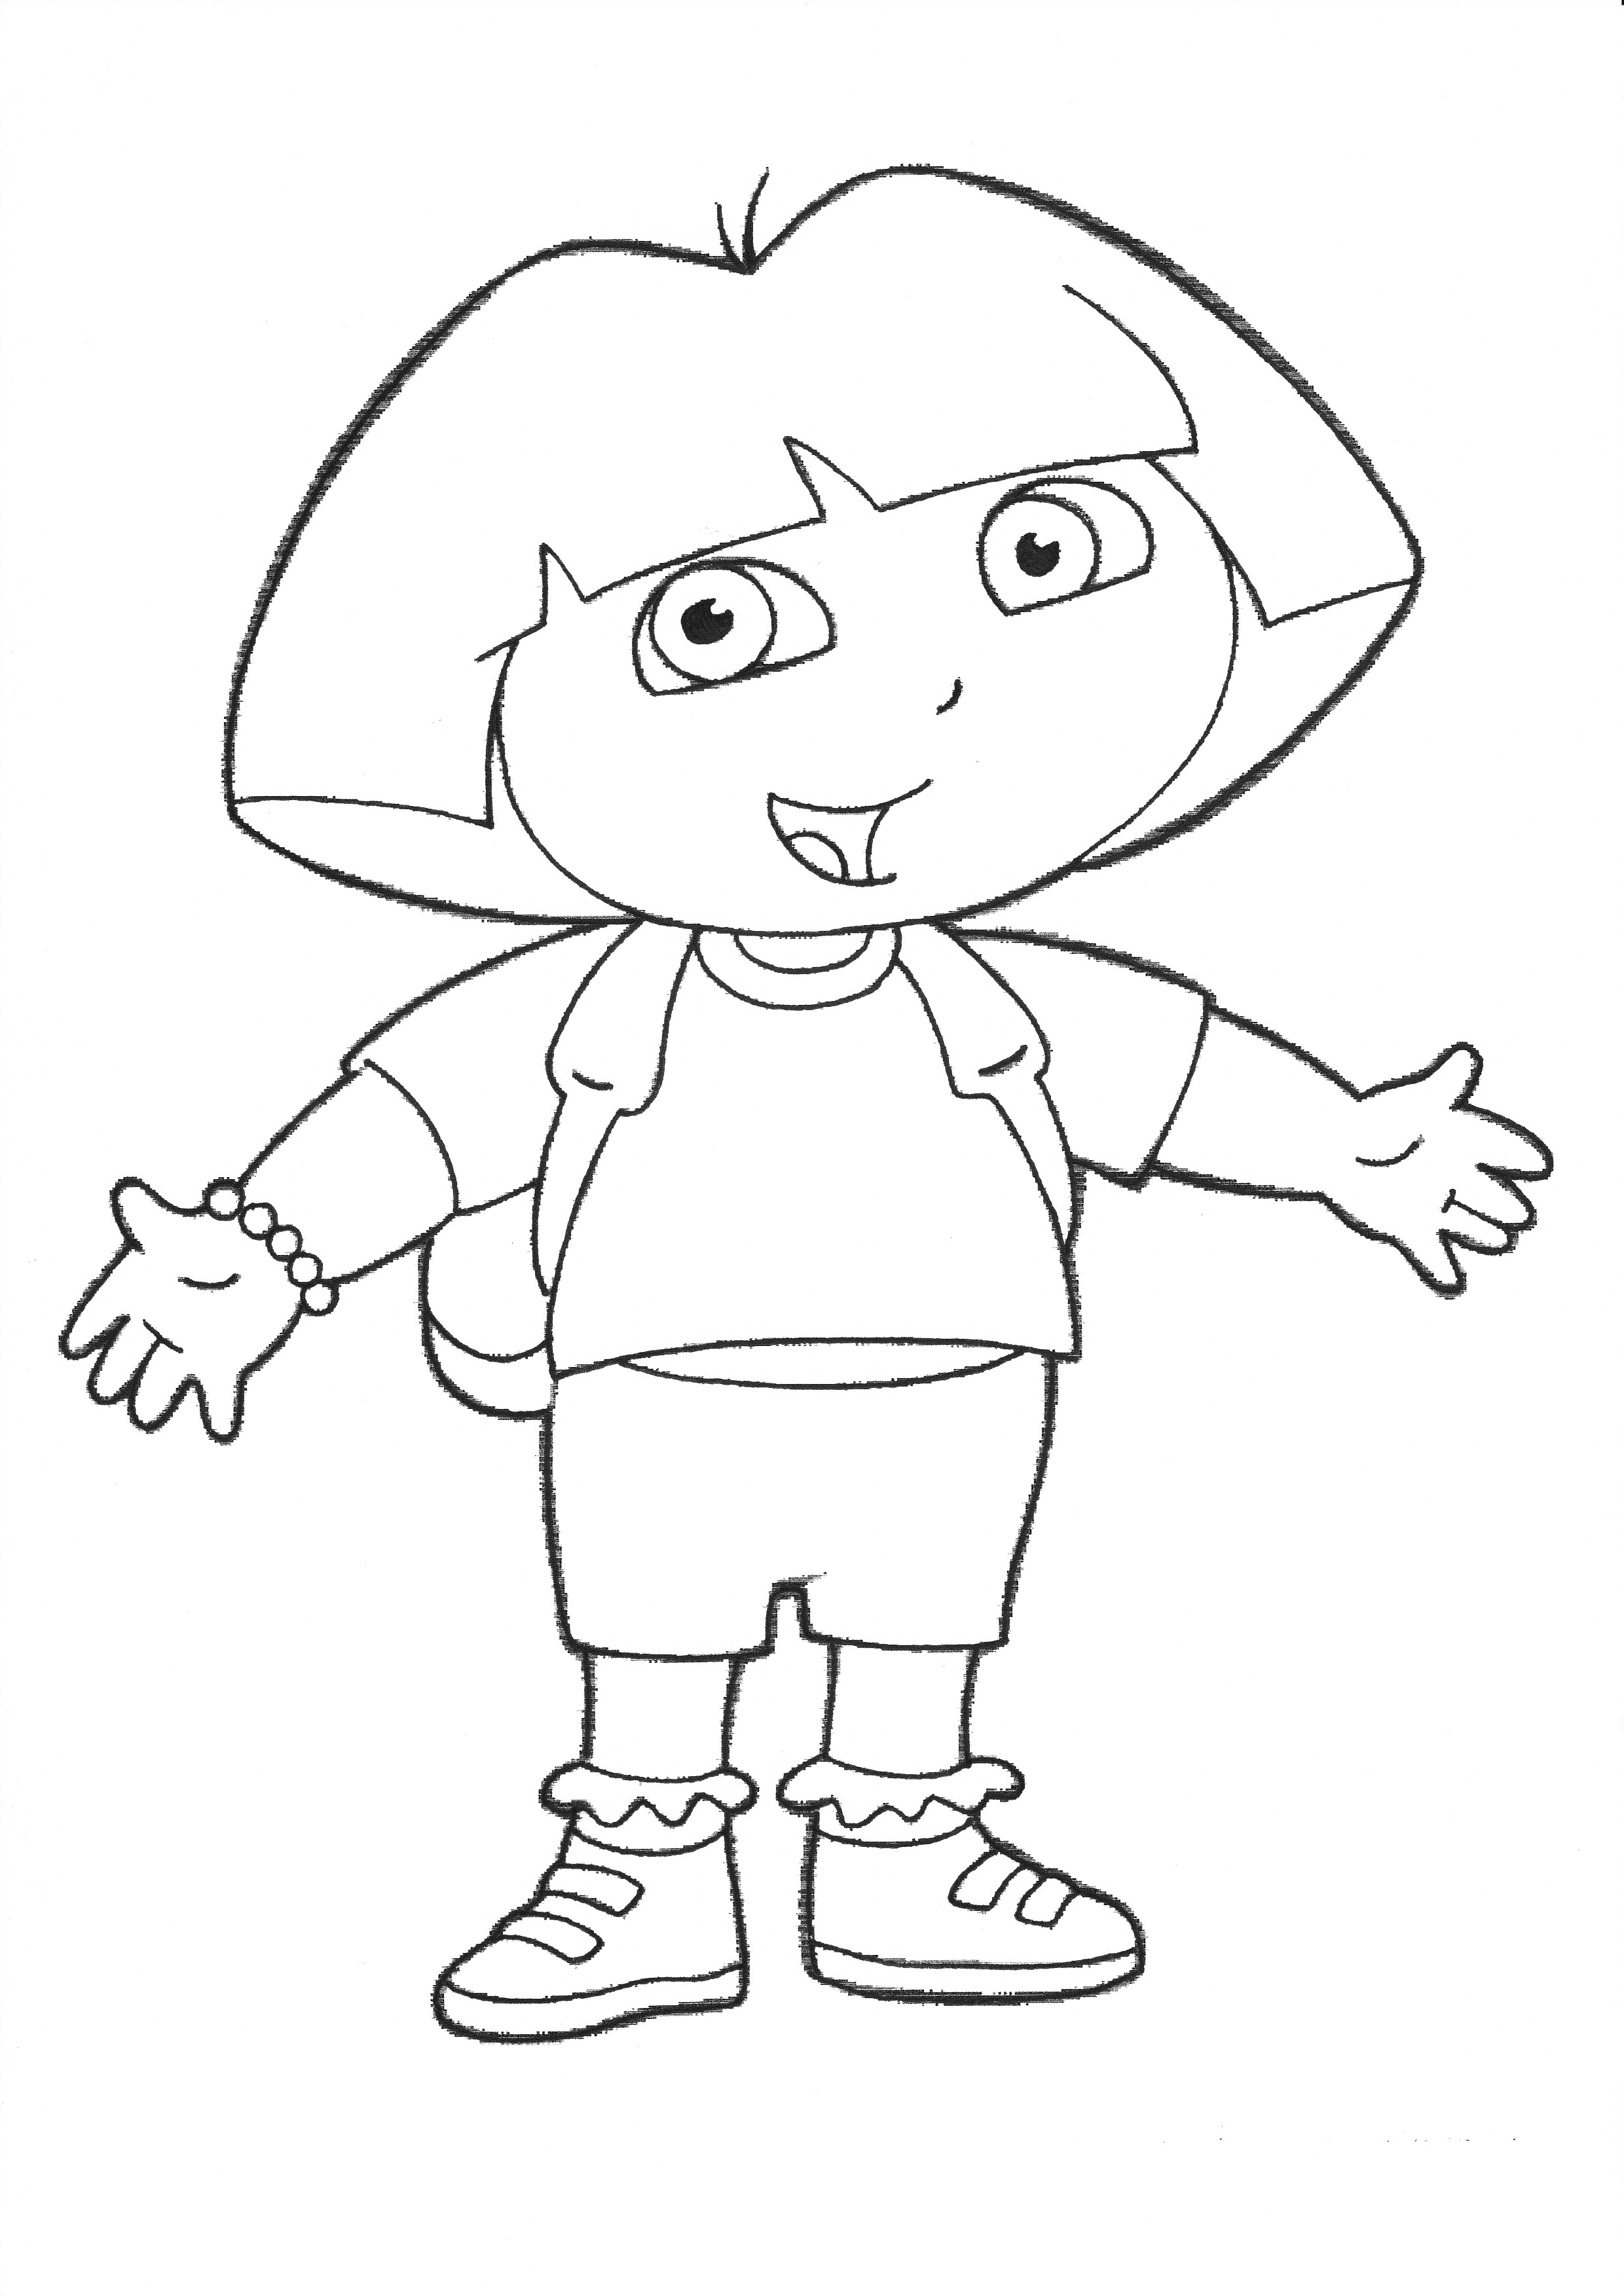 dora pictures to color and print dora coloring pages to print for freegif 9051 200 pixels to and print pictures dora color